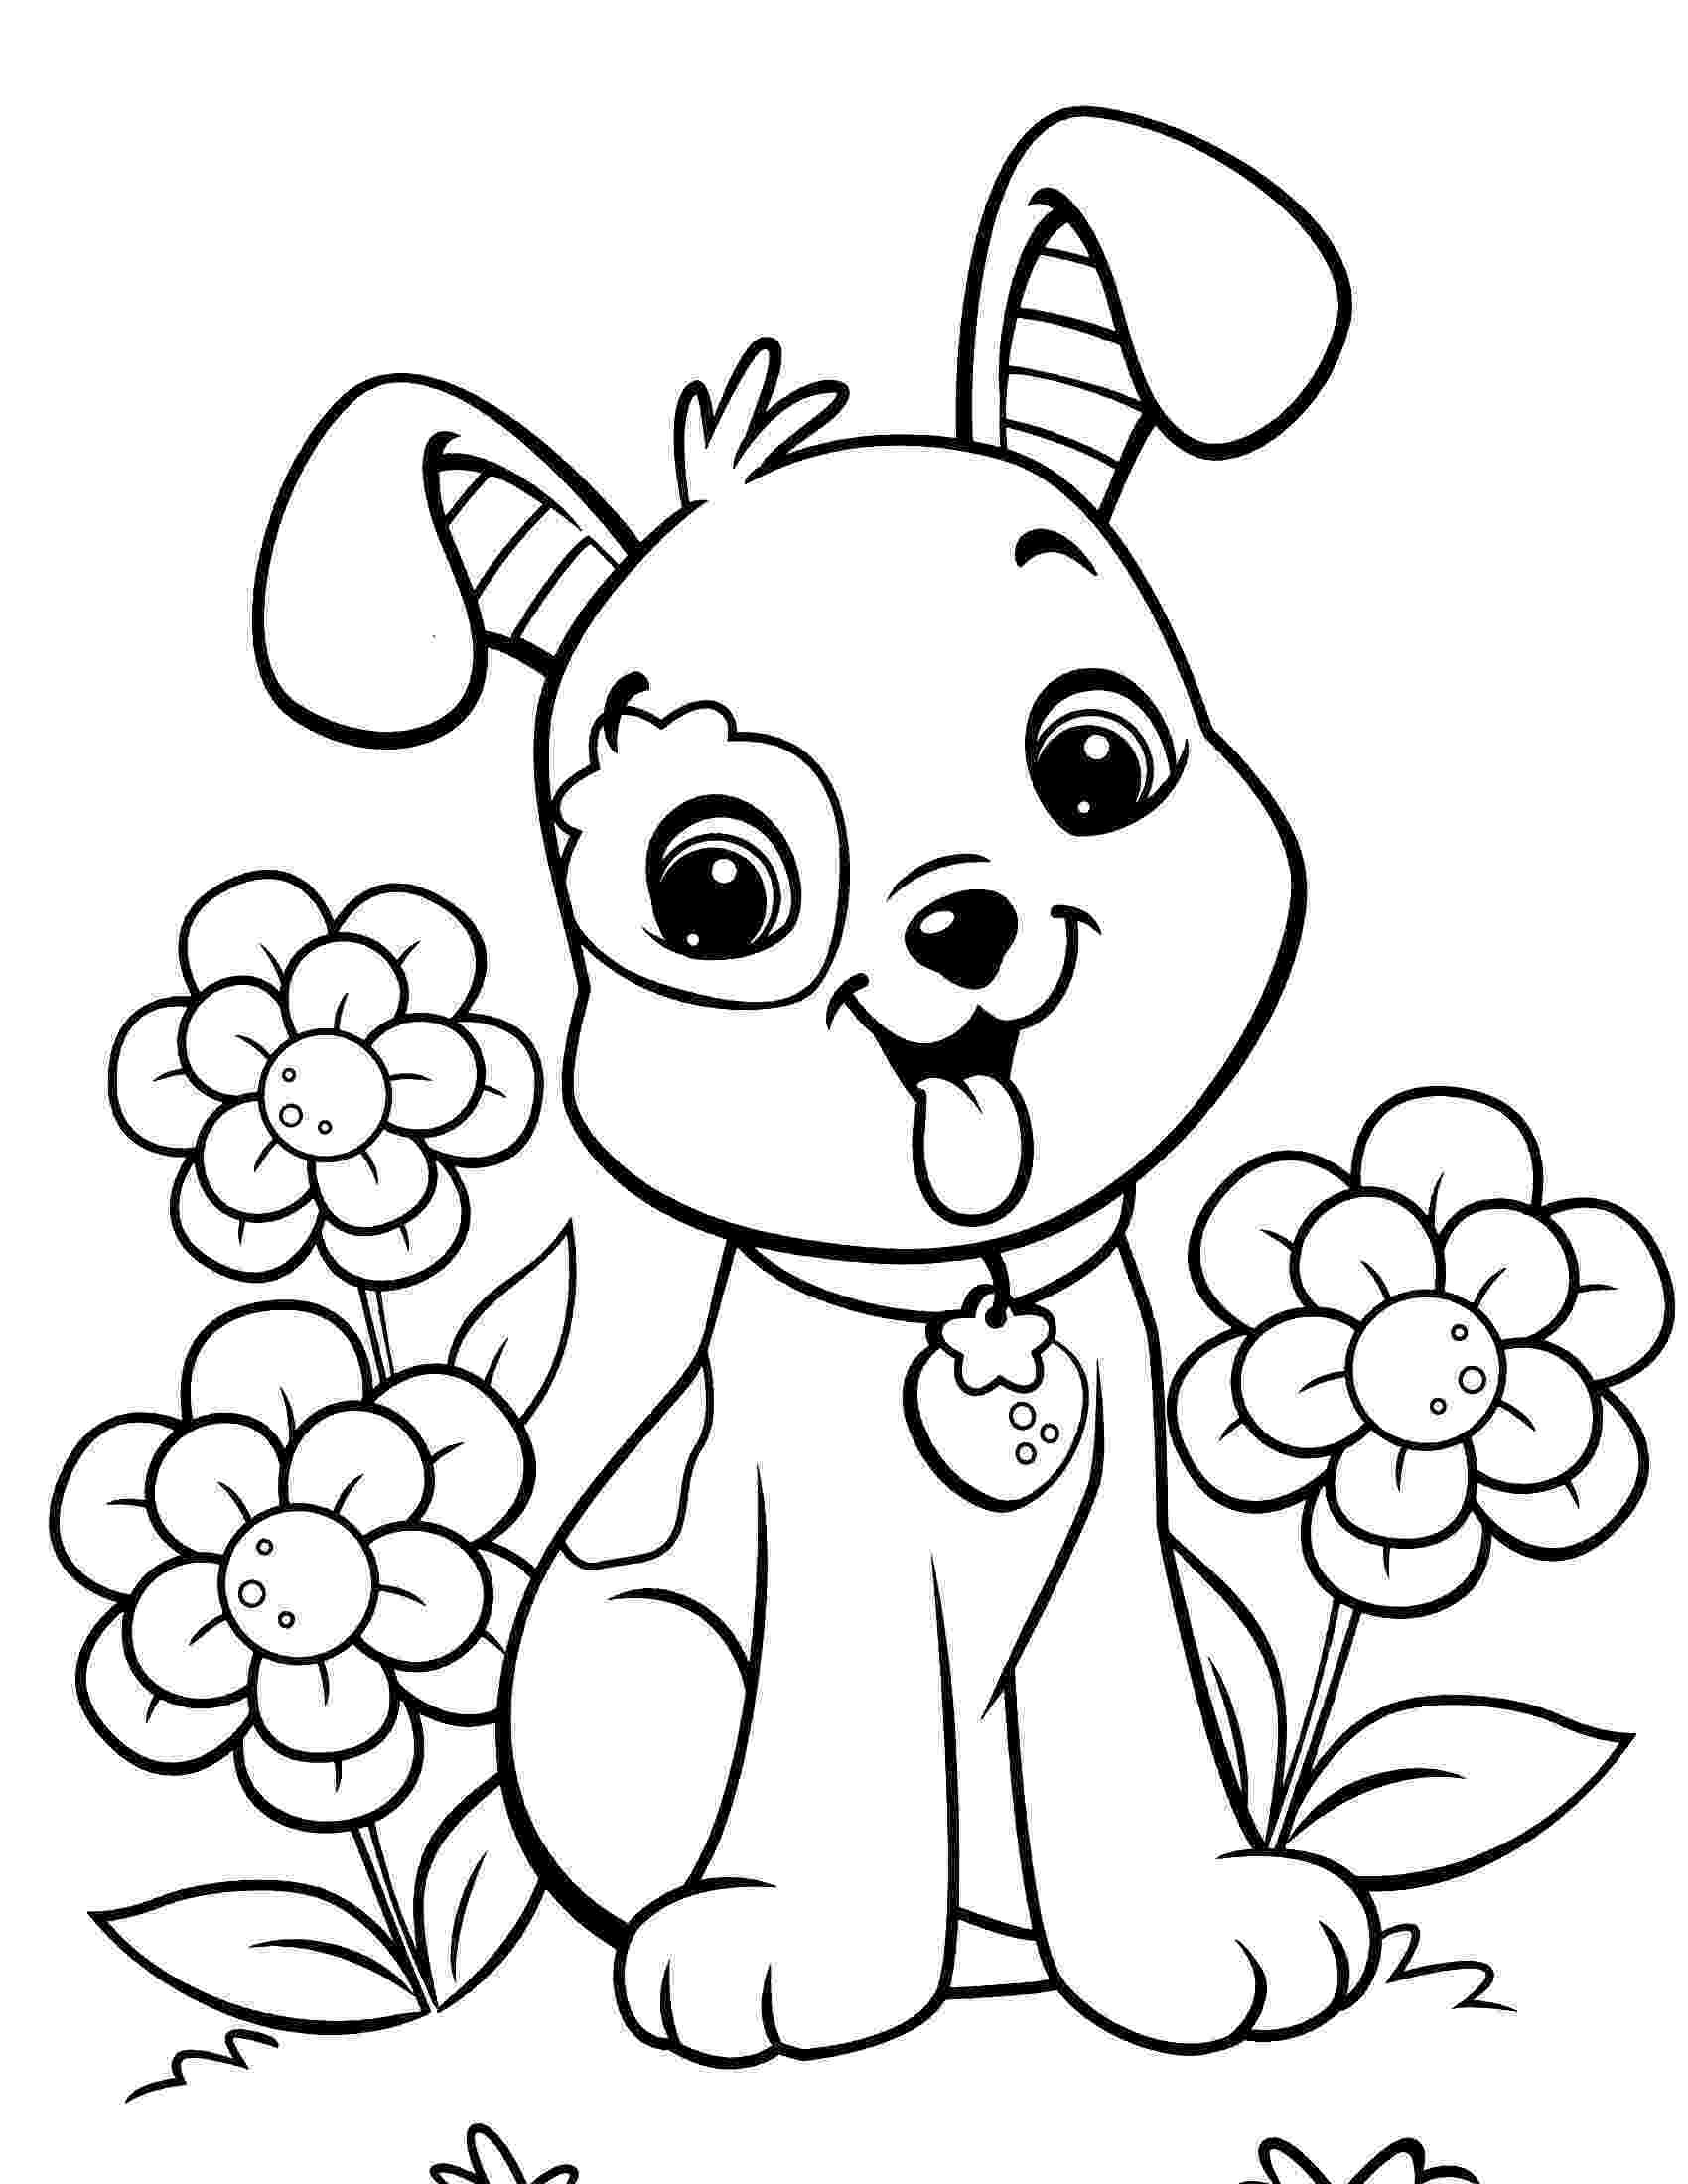 dog coloring sheets printable cute dog coloring pages to download and print for free printable sheets dog coloring